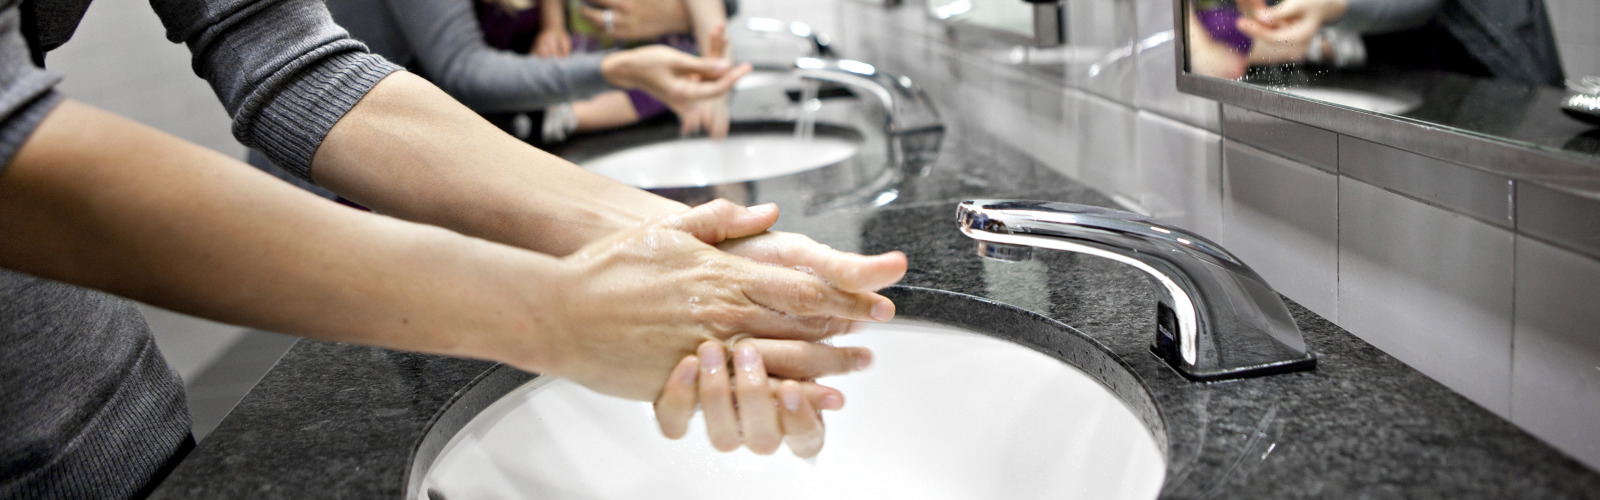 Washing-hands_420701_orginal.jpg